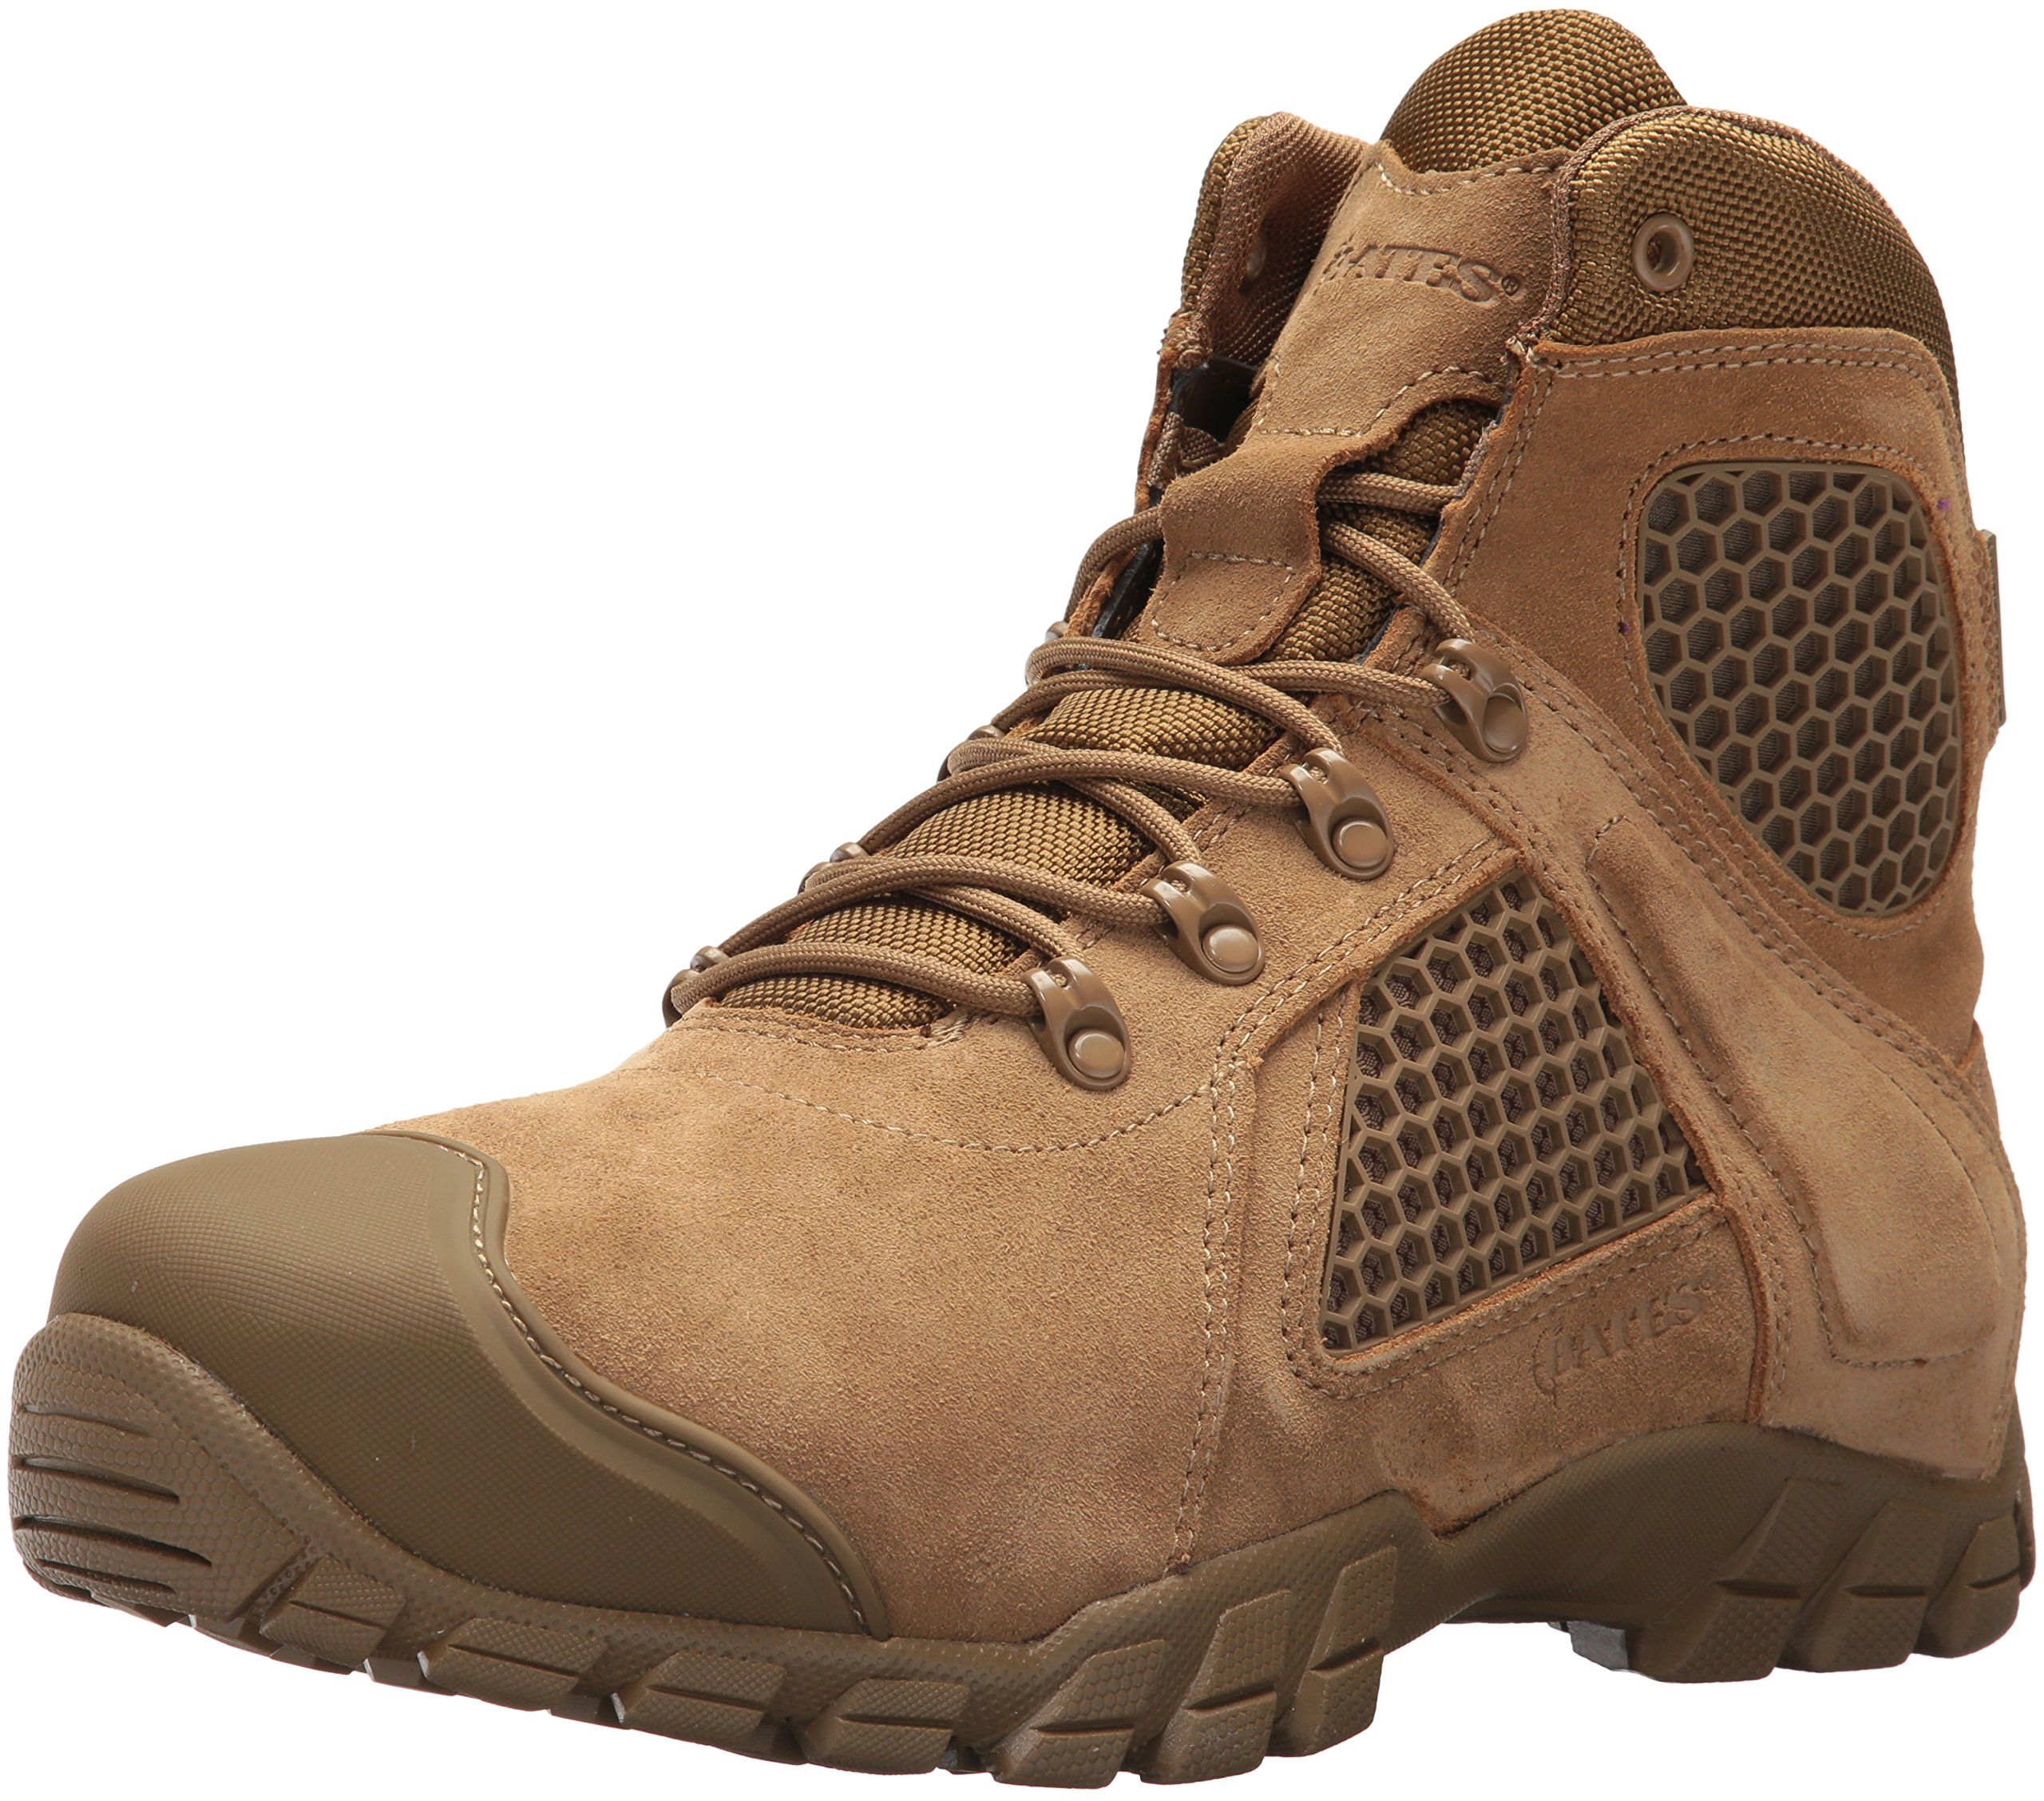 f052a6450ee Bates Men's Shock FX Military and Tactical Boot, Coyote, 08.5 2E US